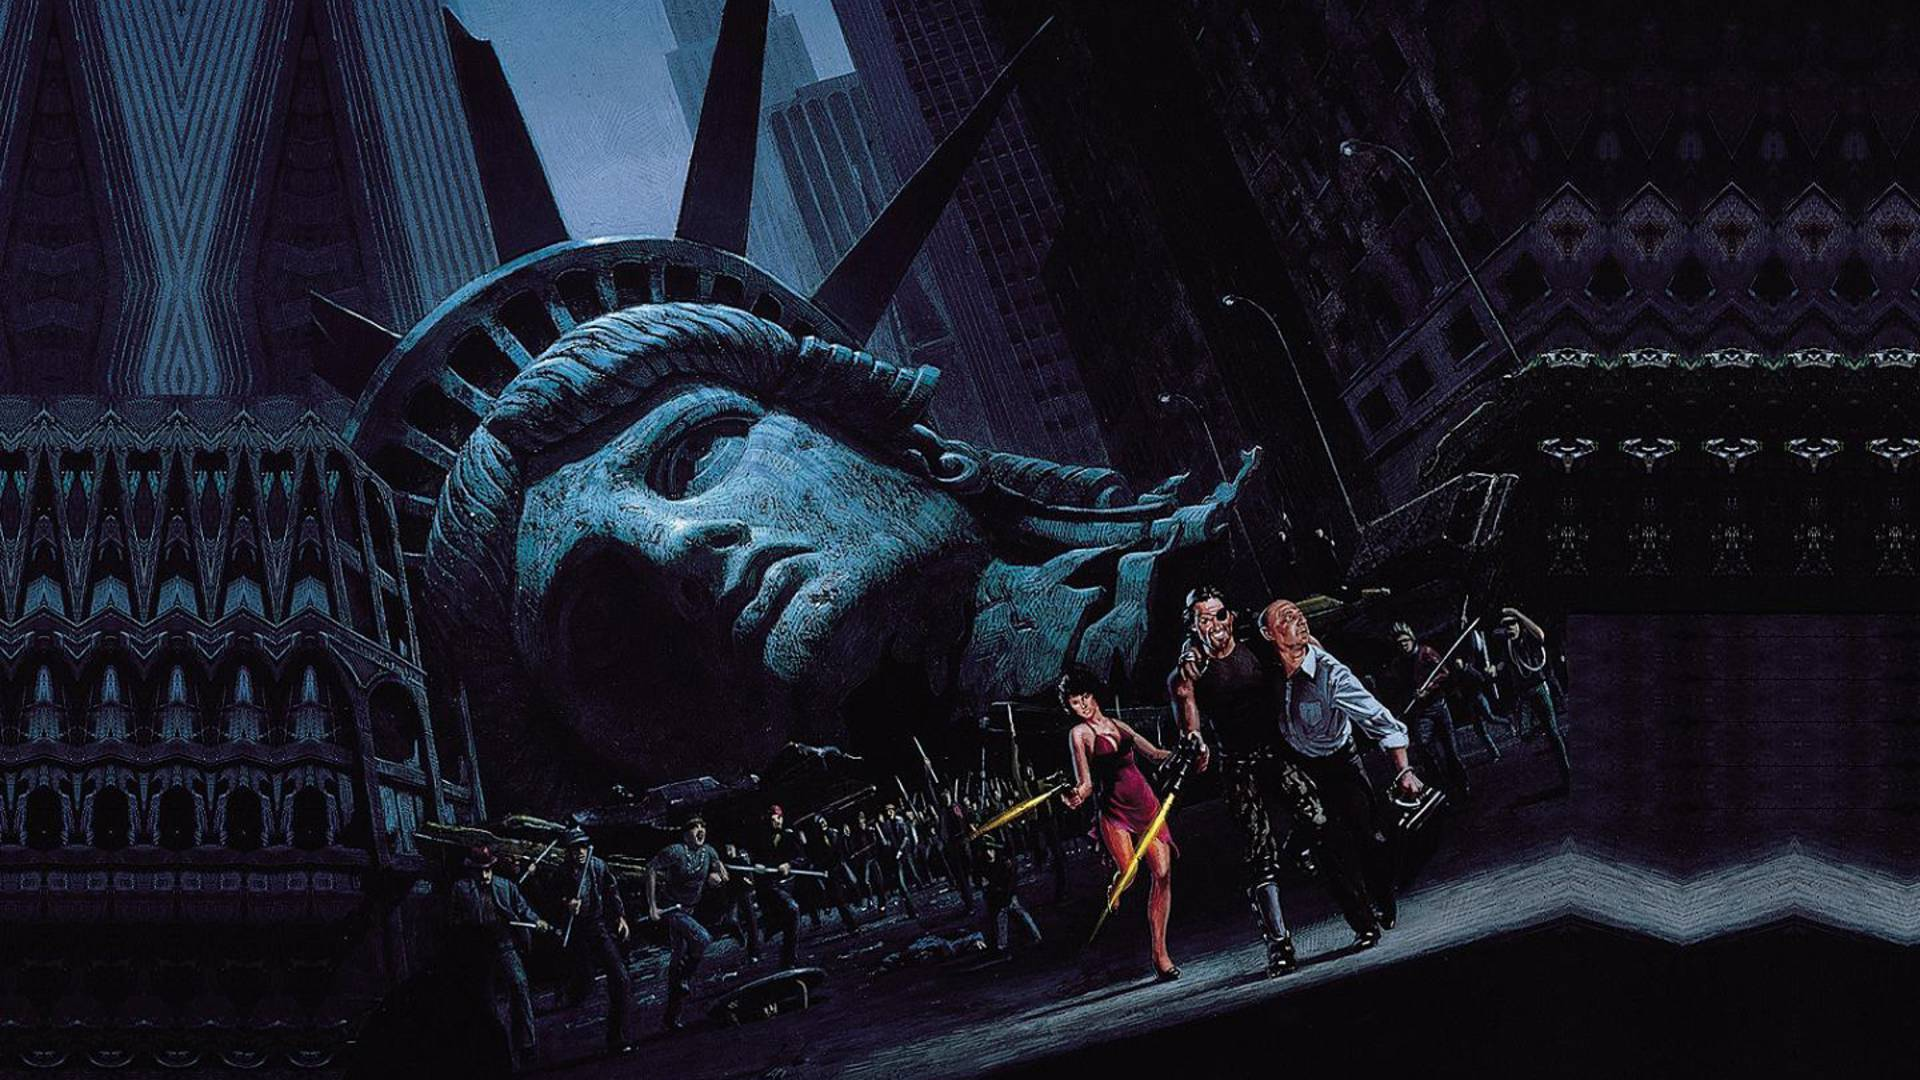 Robert Rodriguez Set to Direct Escape from New York Remake